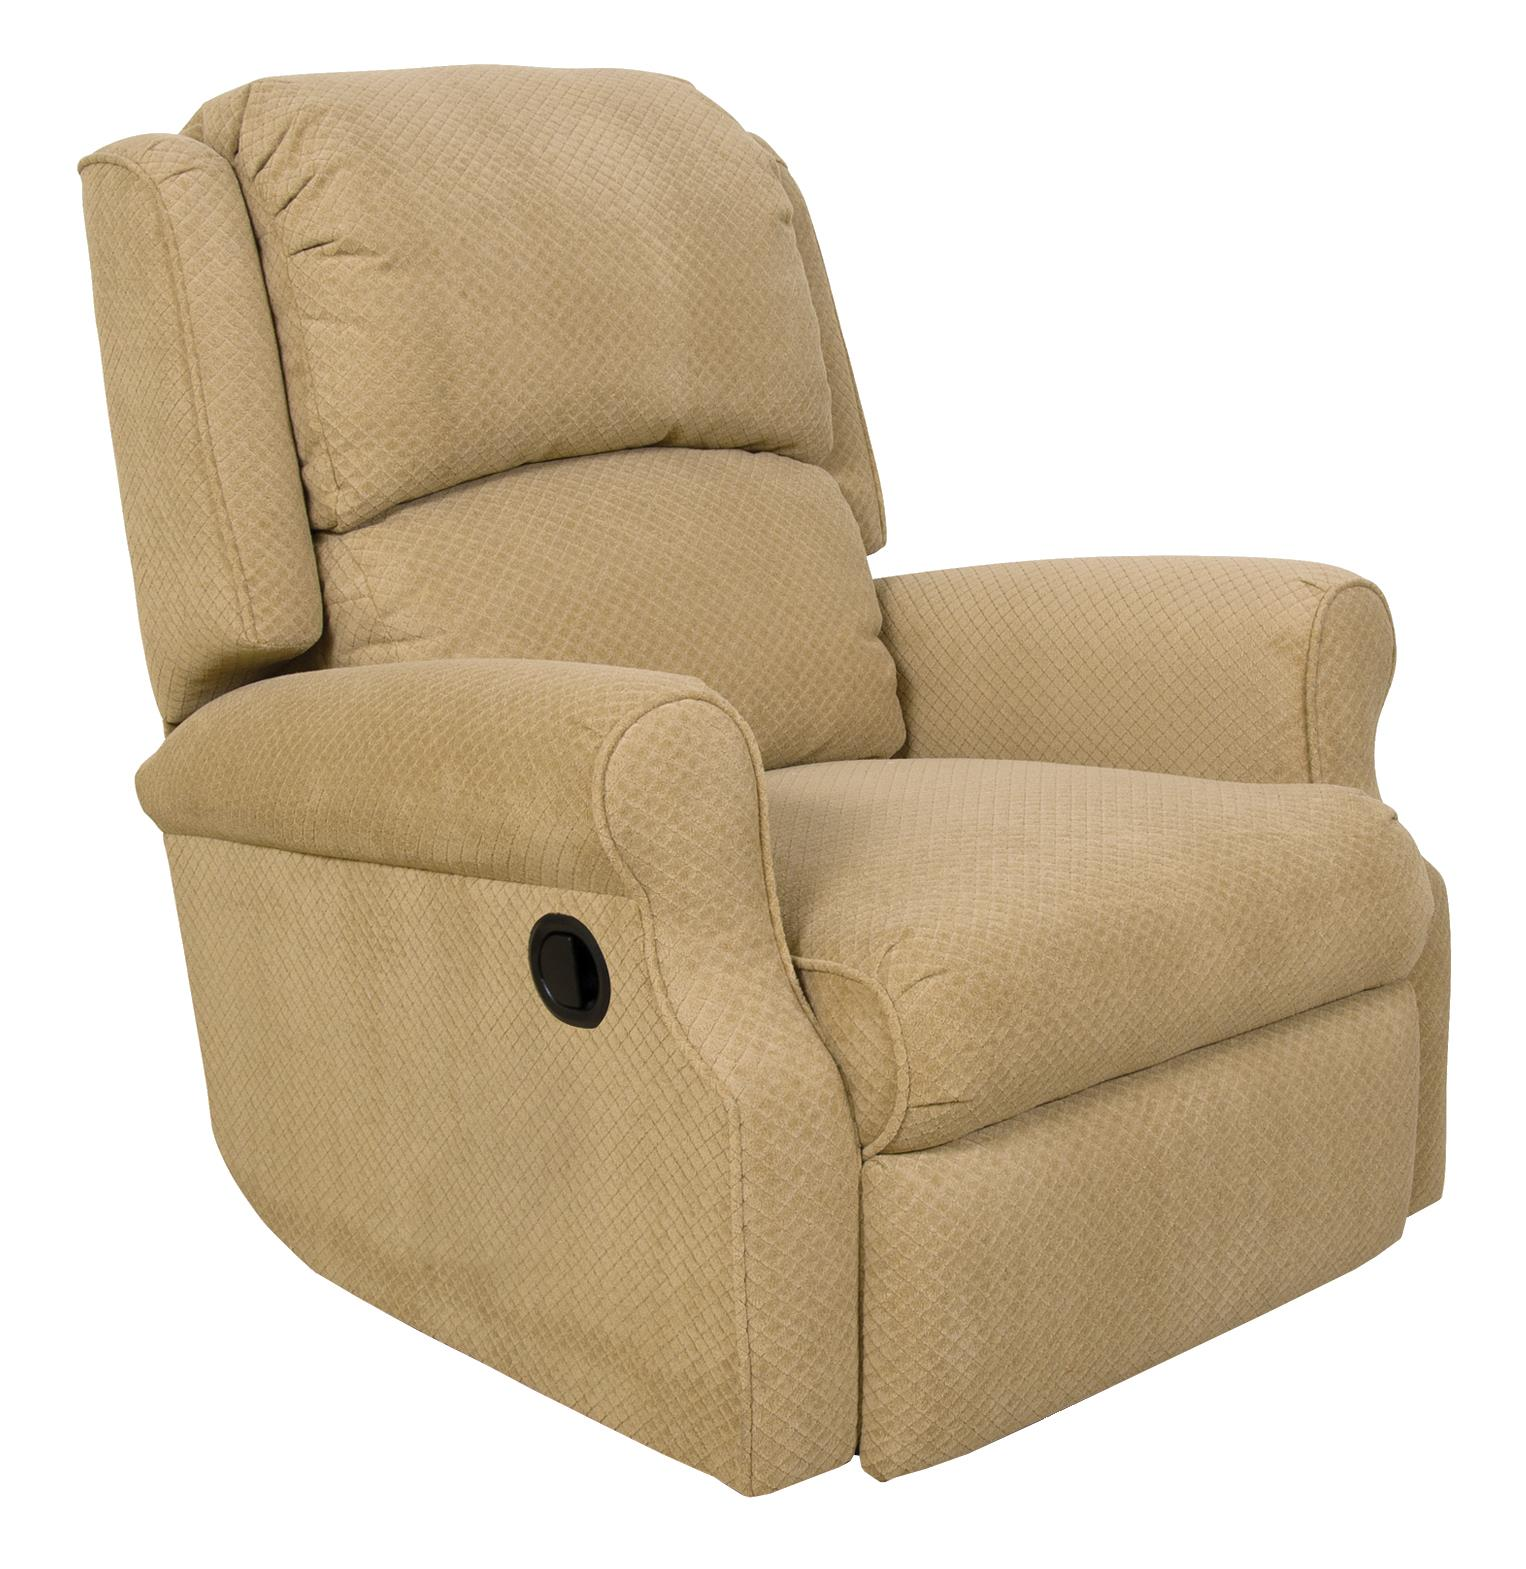 Marybeth Reclining Lift Chair by England at Furniture Superstore - Rochester, MN